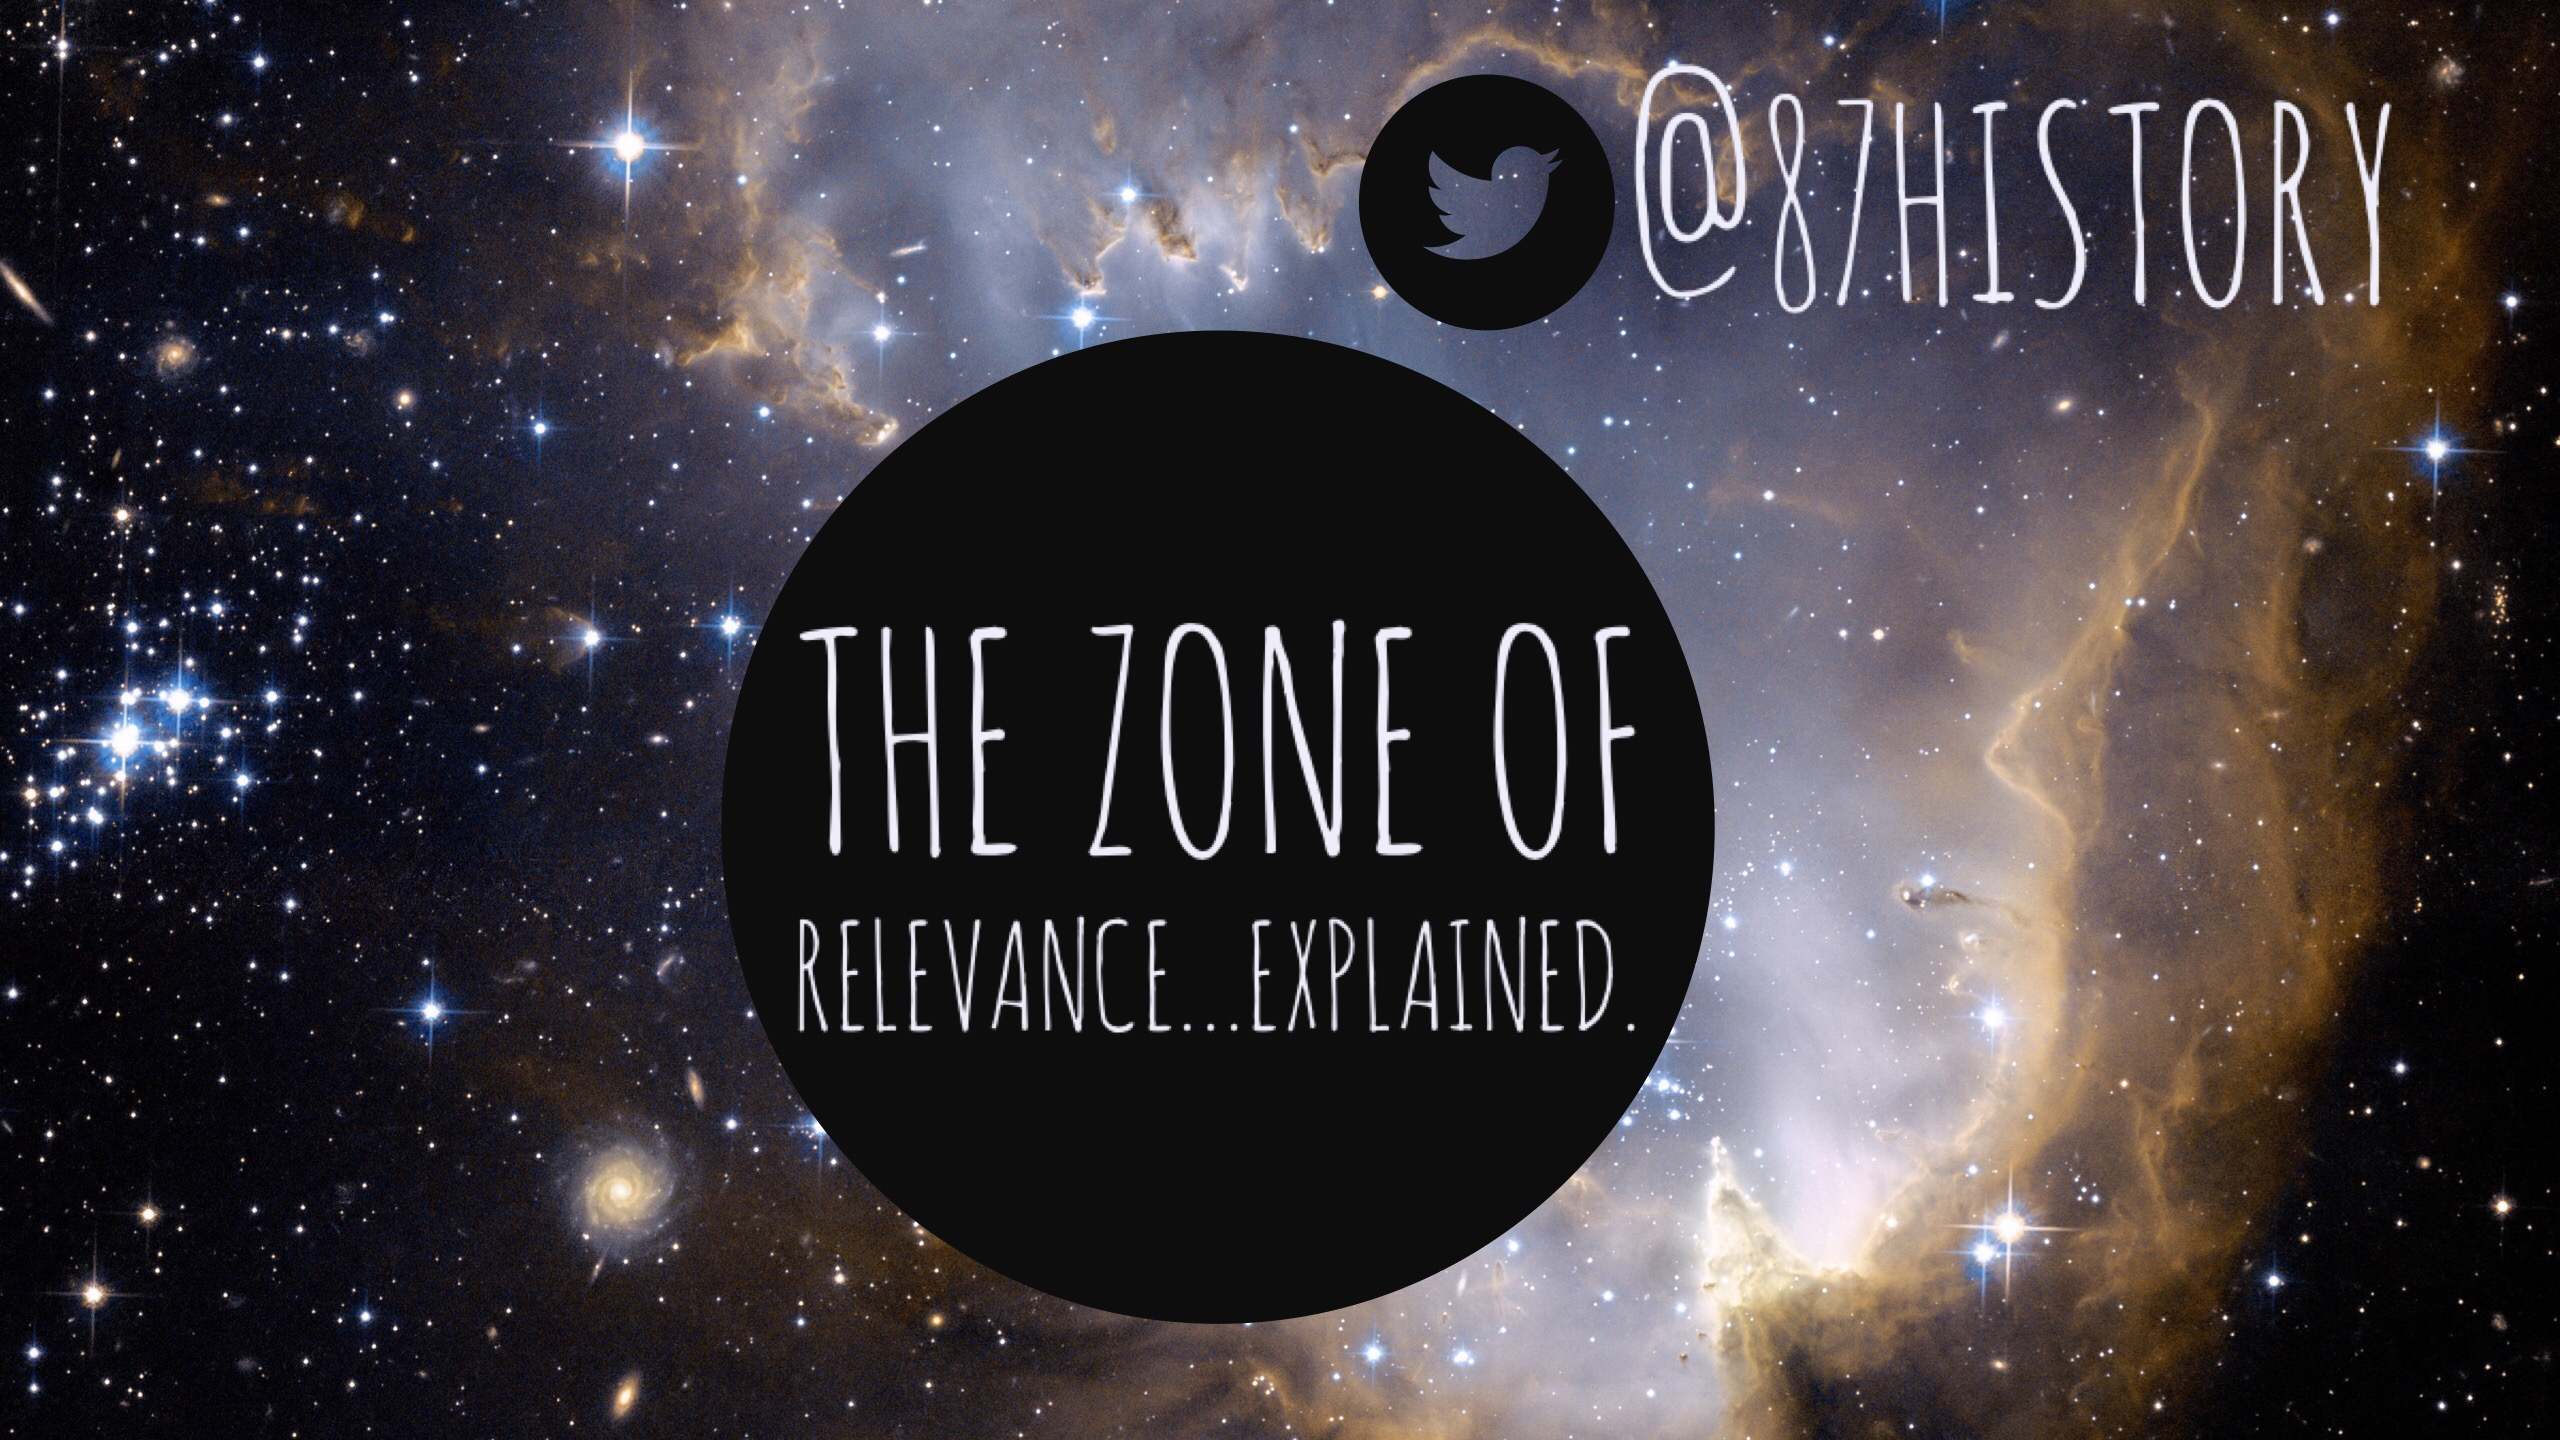 The Zone of Relevance…explained.